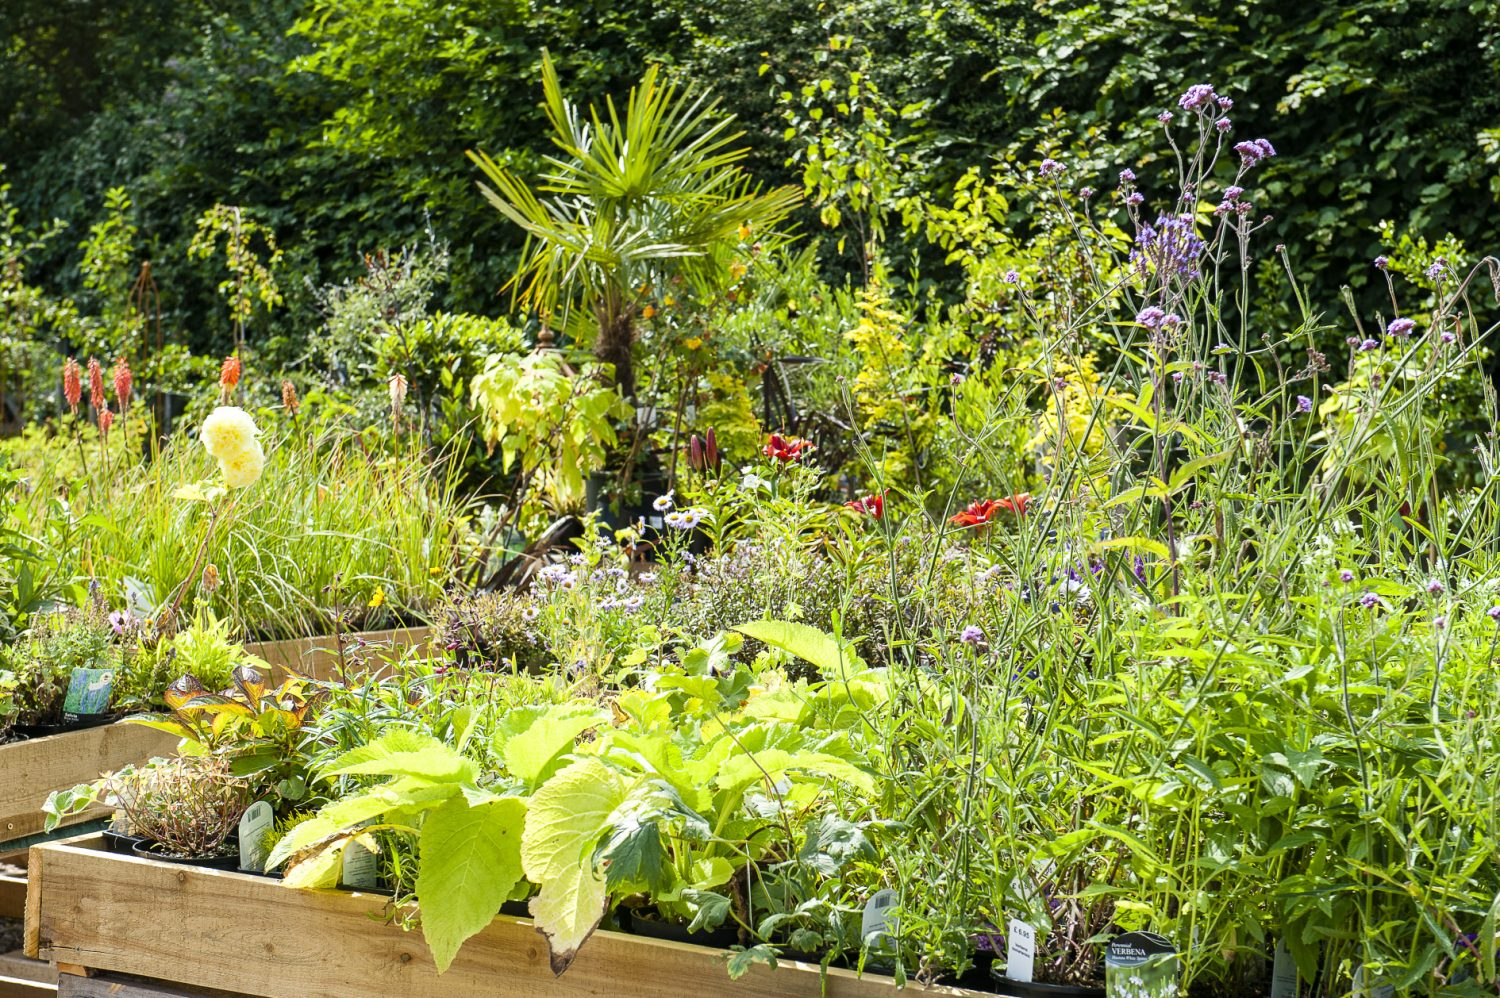 A raised bed full of vibrant planting